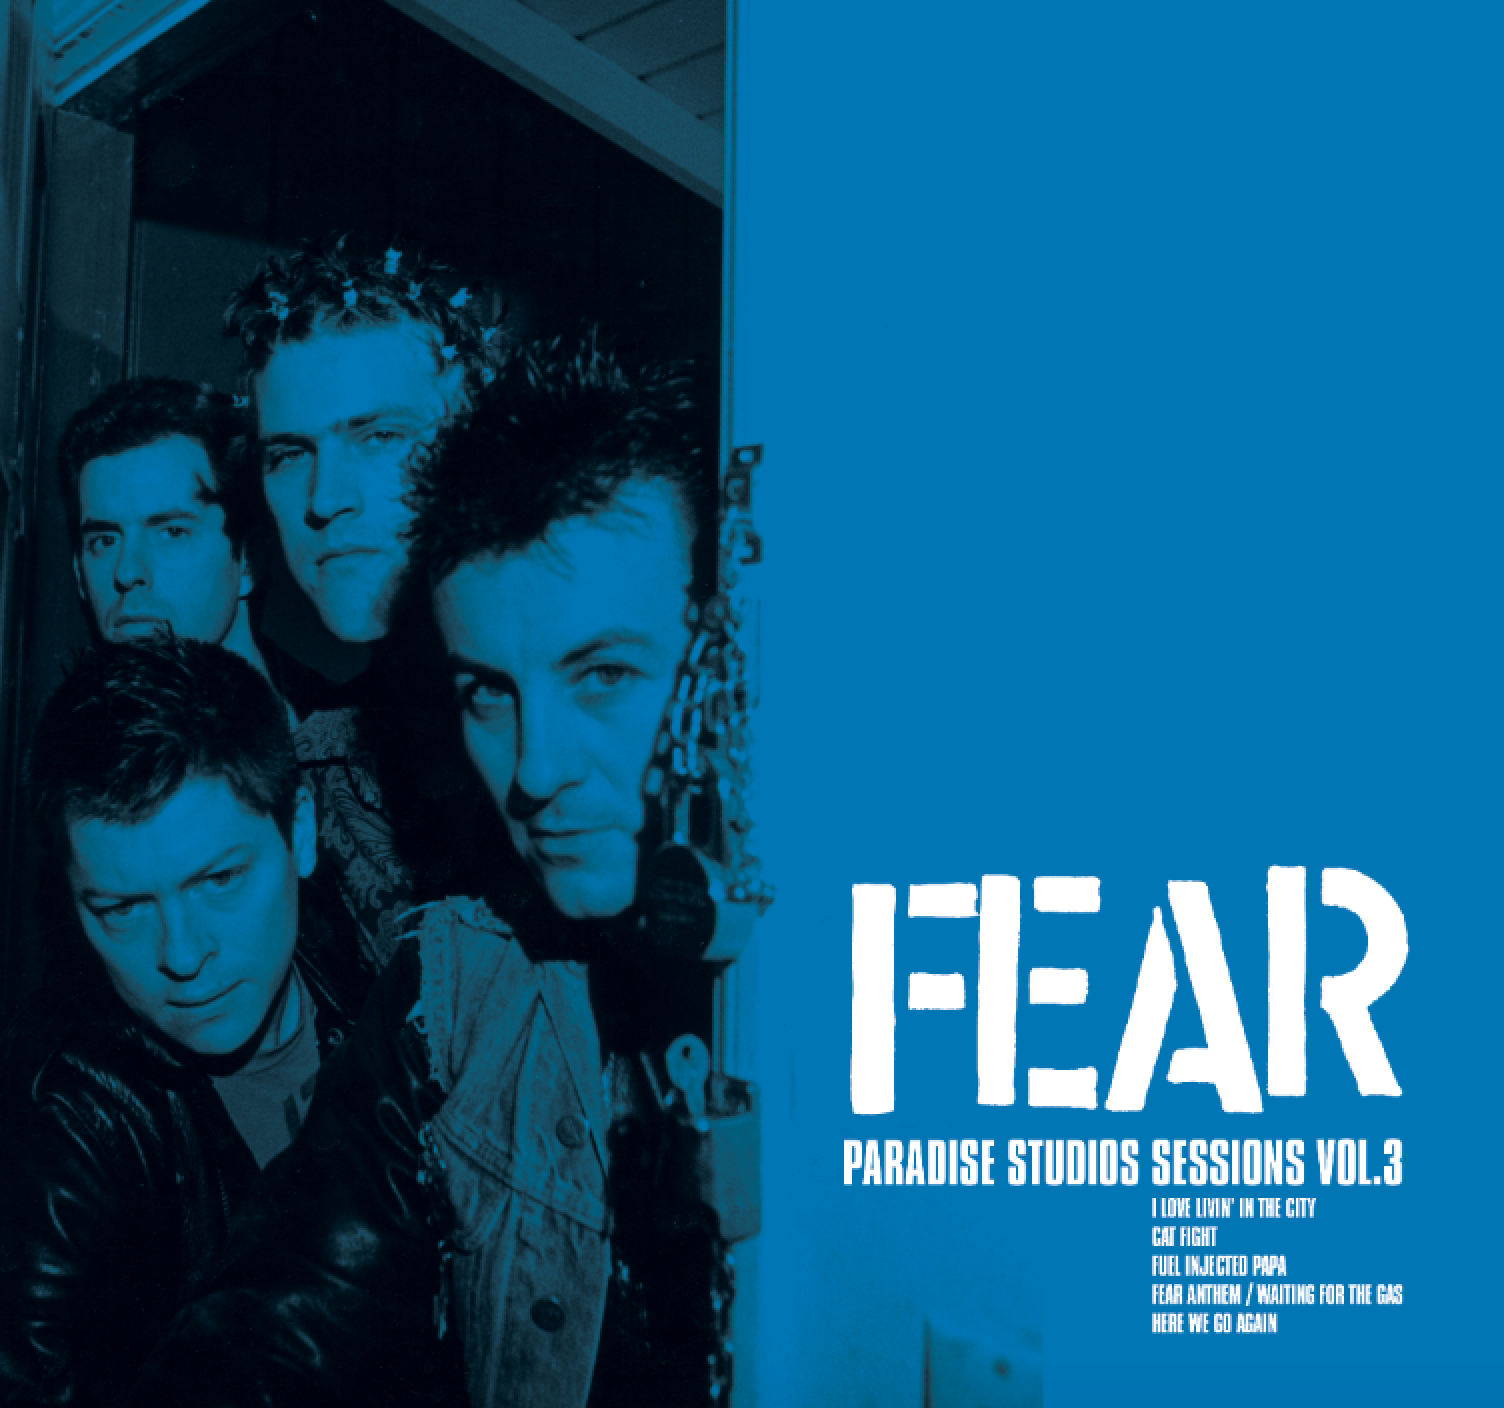 "FEAR 'PARADISE STUDIOS SESSIONS VOL. 3' 7"" VINYL SINGLE (LIMITED EDITION) BLUE VINYL"